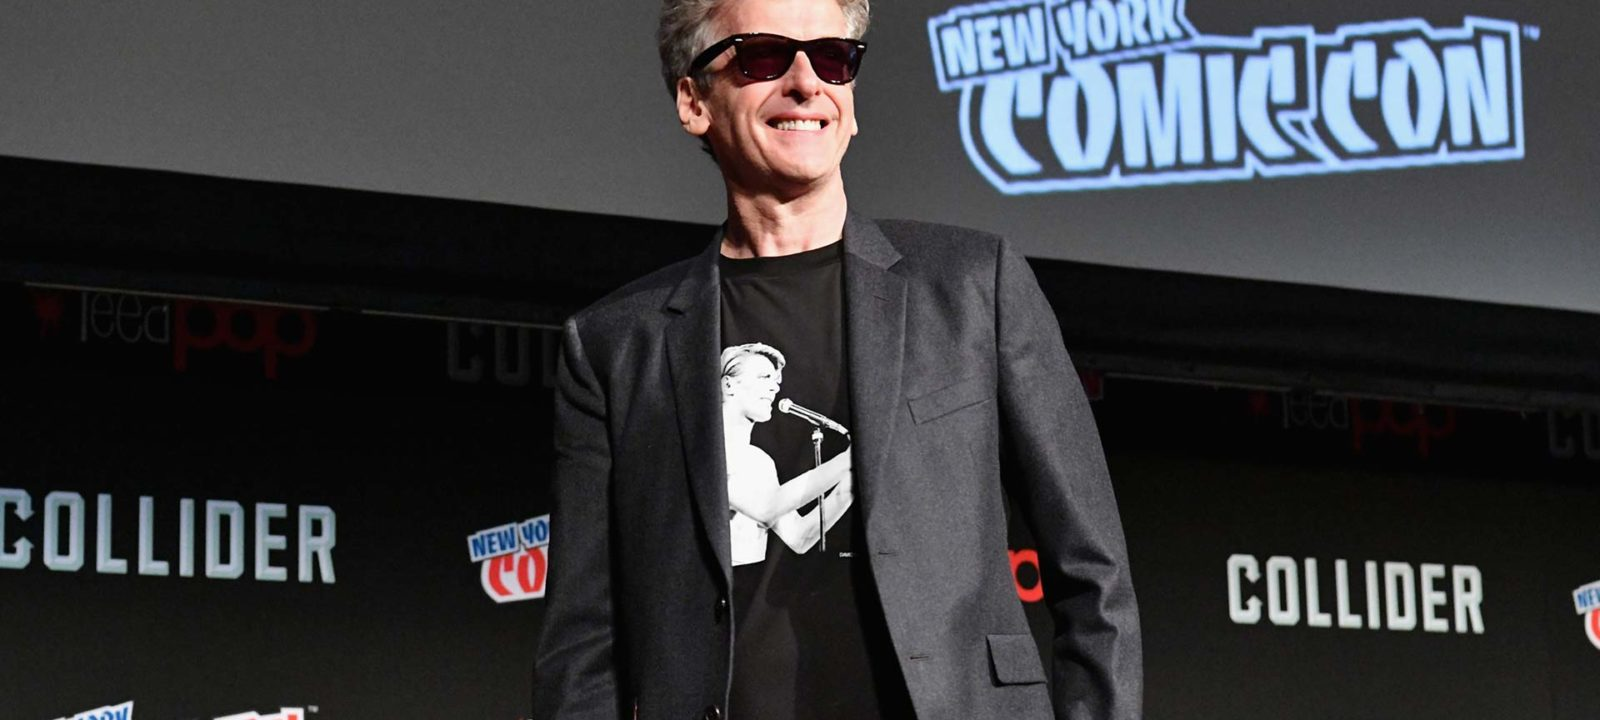 capaldi-featured-nycc